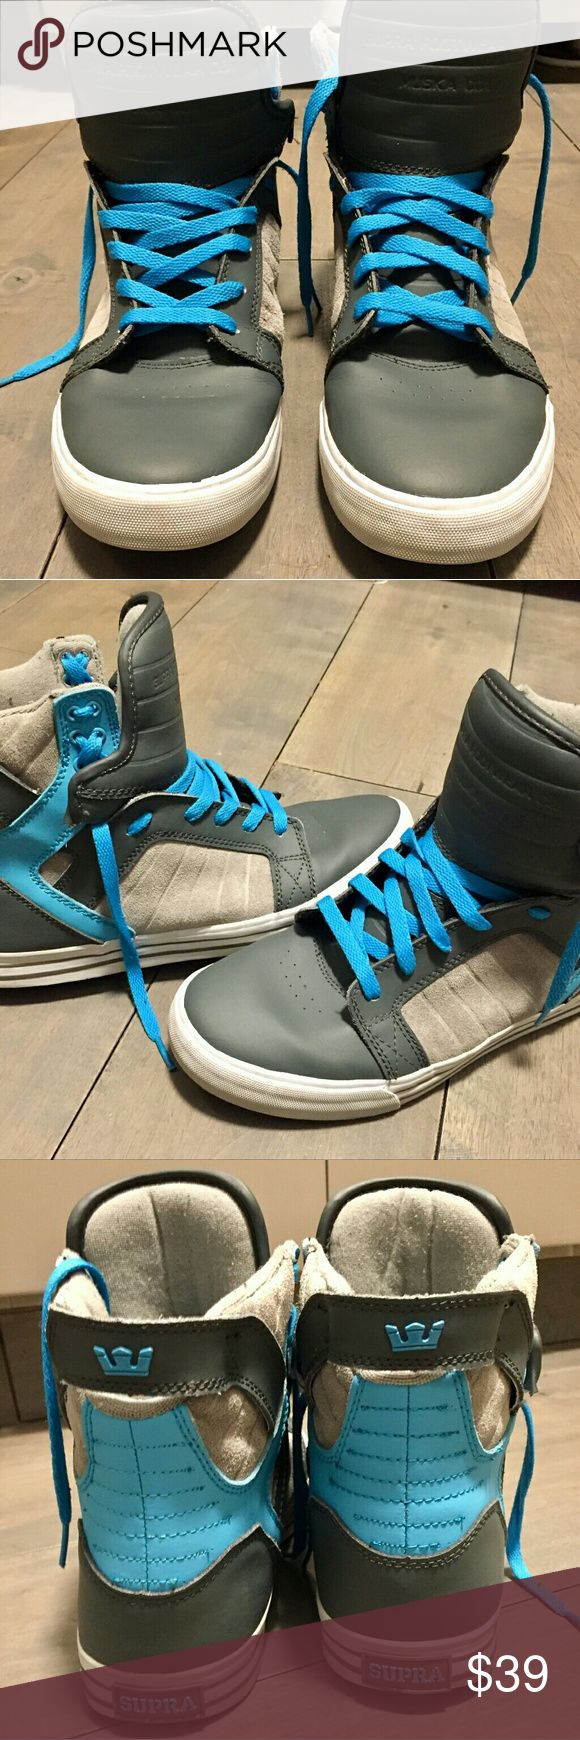 SUPRA MUSKA 001 SKYTOP MEN'S SNEAKERS SUPRA Muska 001 Skytop Men's sneakers size 10. Dark grey/Light grey suede/blue. Preowned. No box. Outside of shoe great condition. Inside of shoe light fabric pilling. Minuscule rocks stuck in gridded sole. Supra Shoes